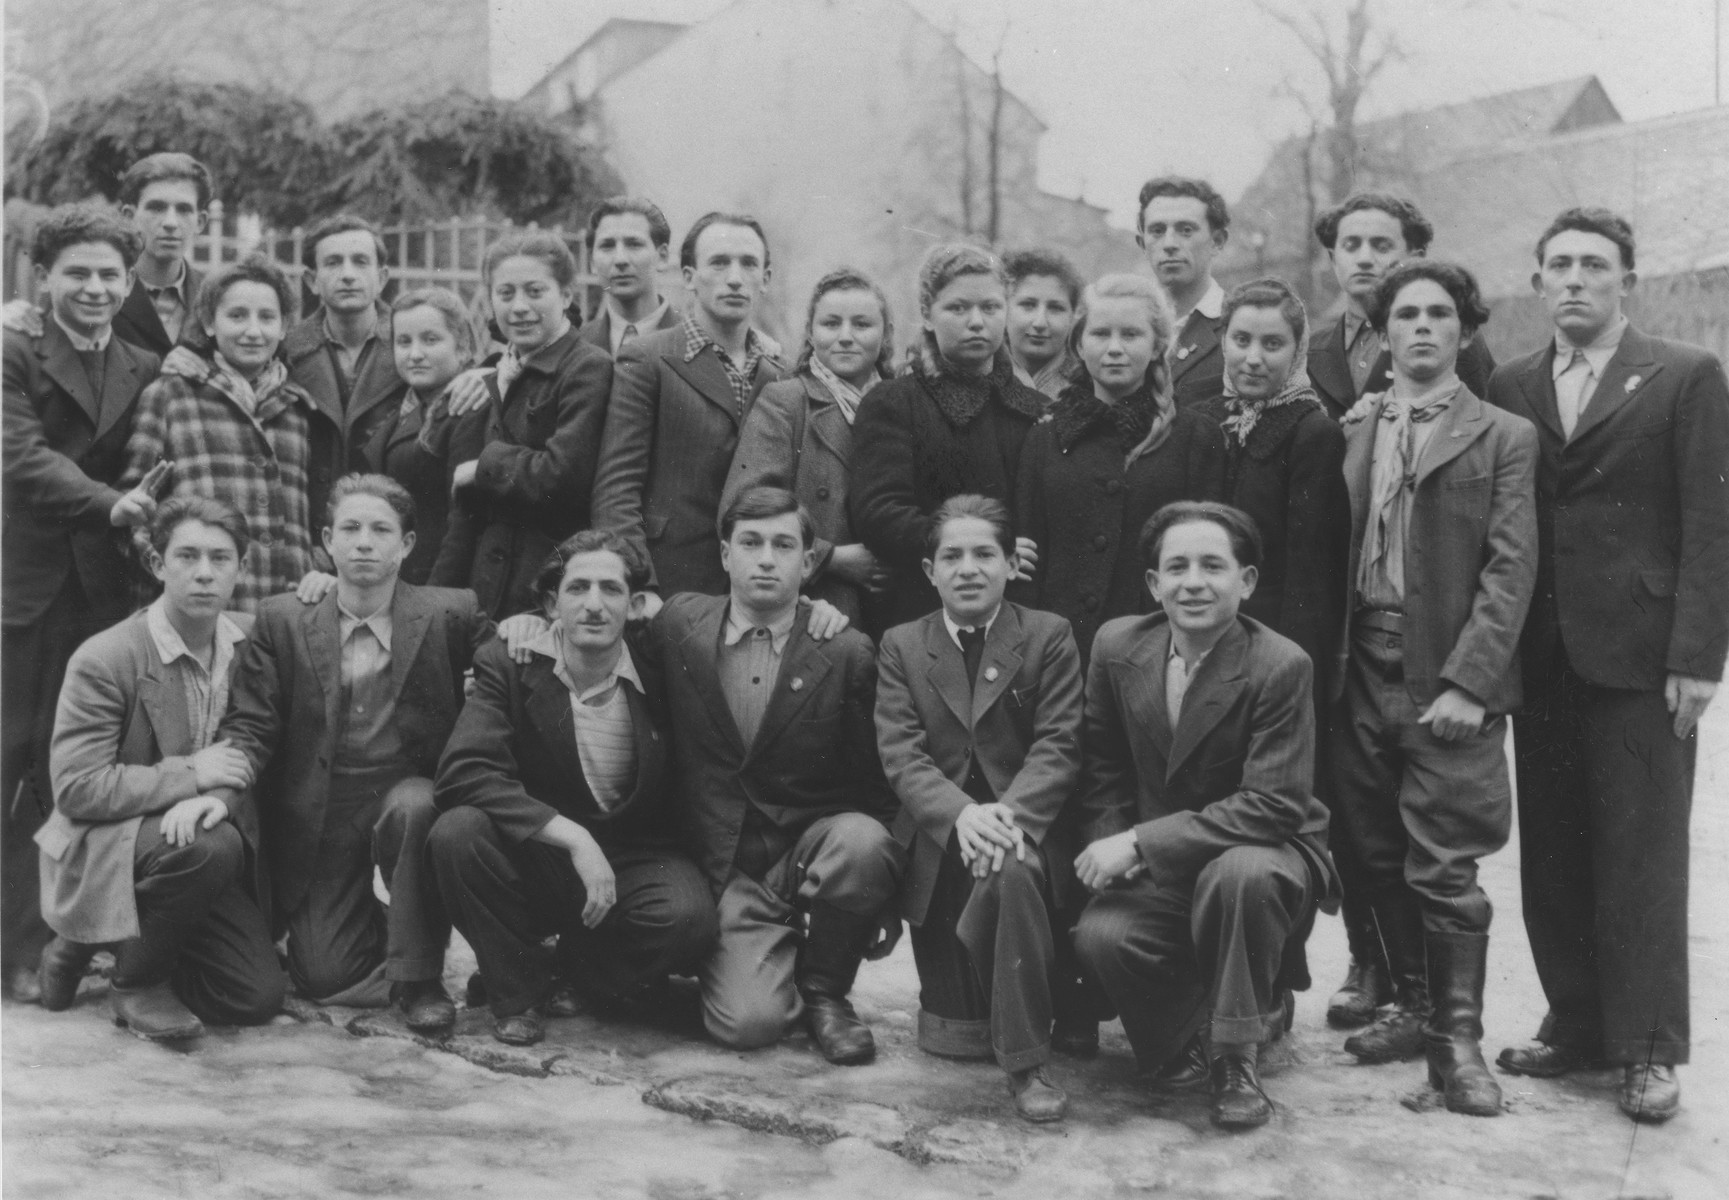 Group portrait of Jewish youth at the Schauenstein displaced persons camp for children.